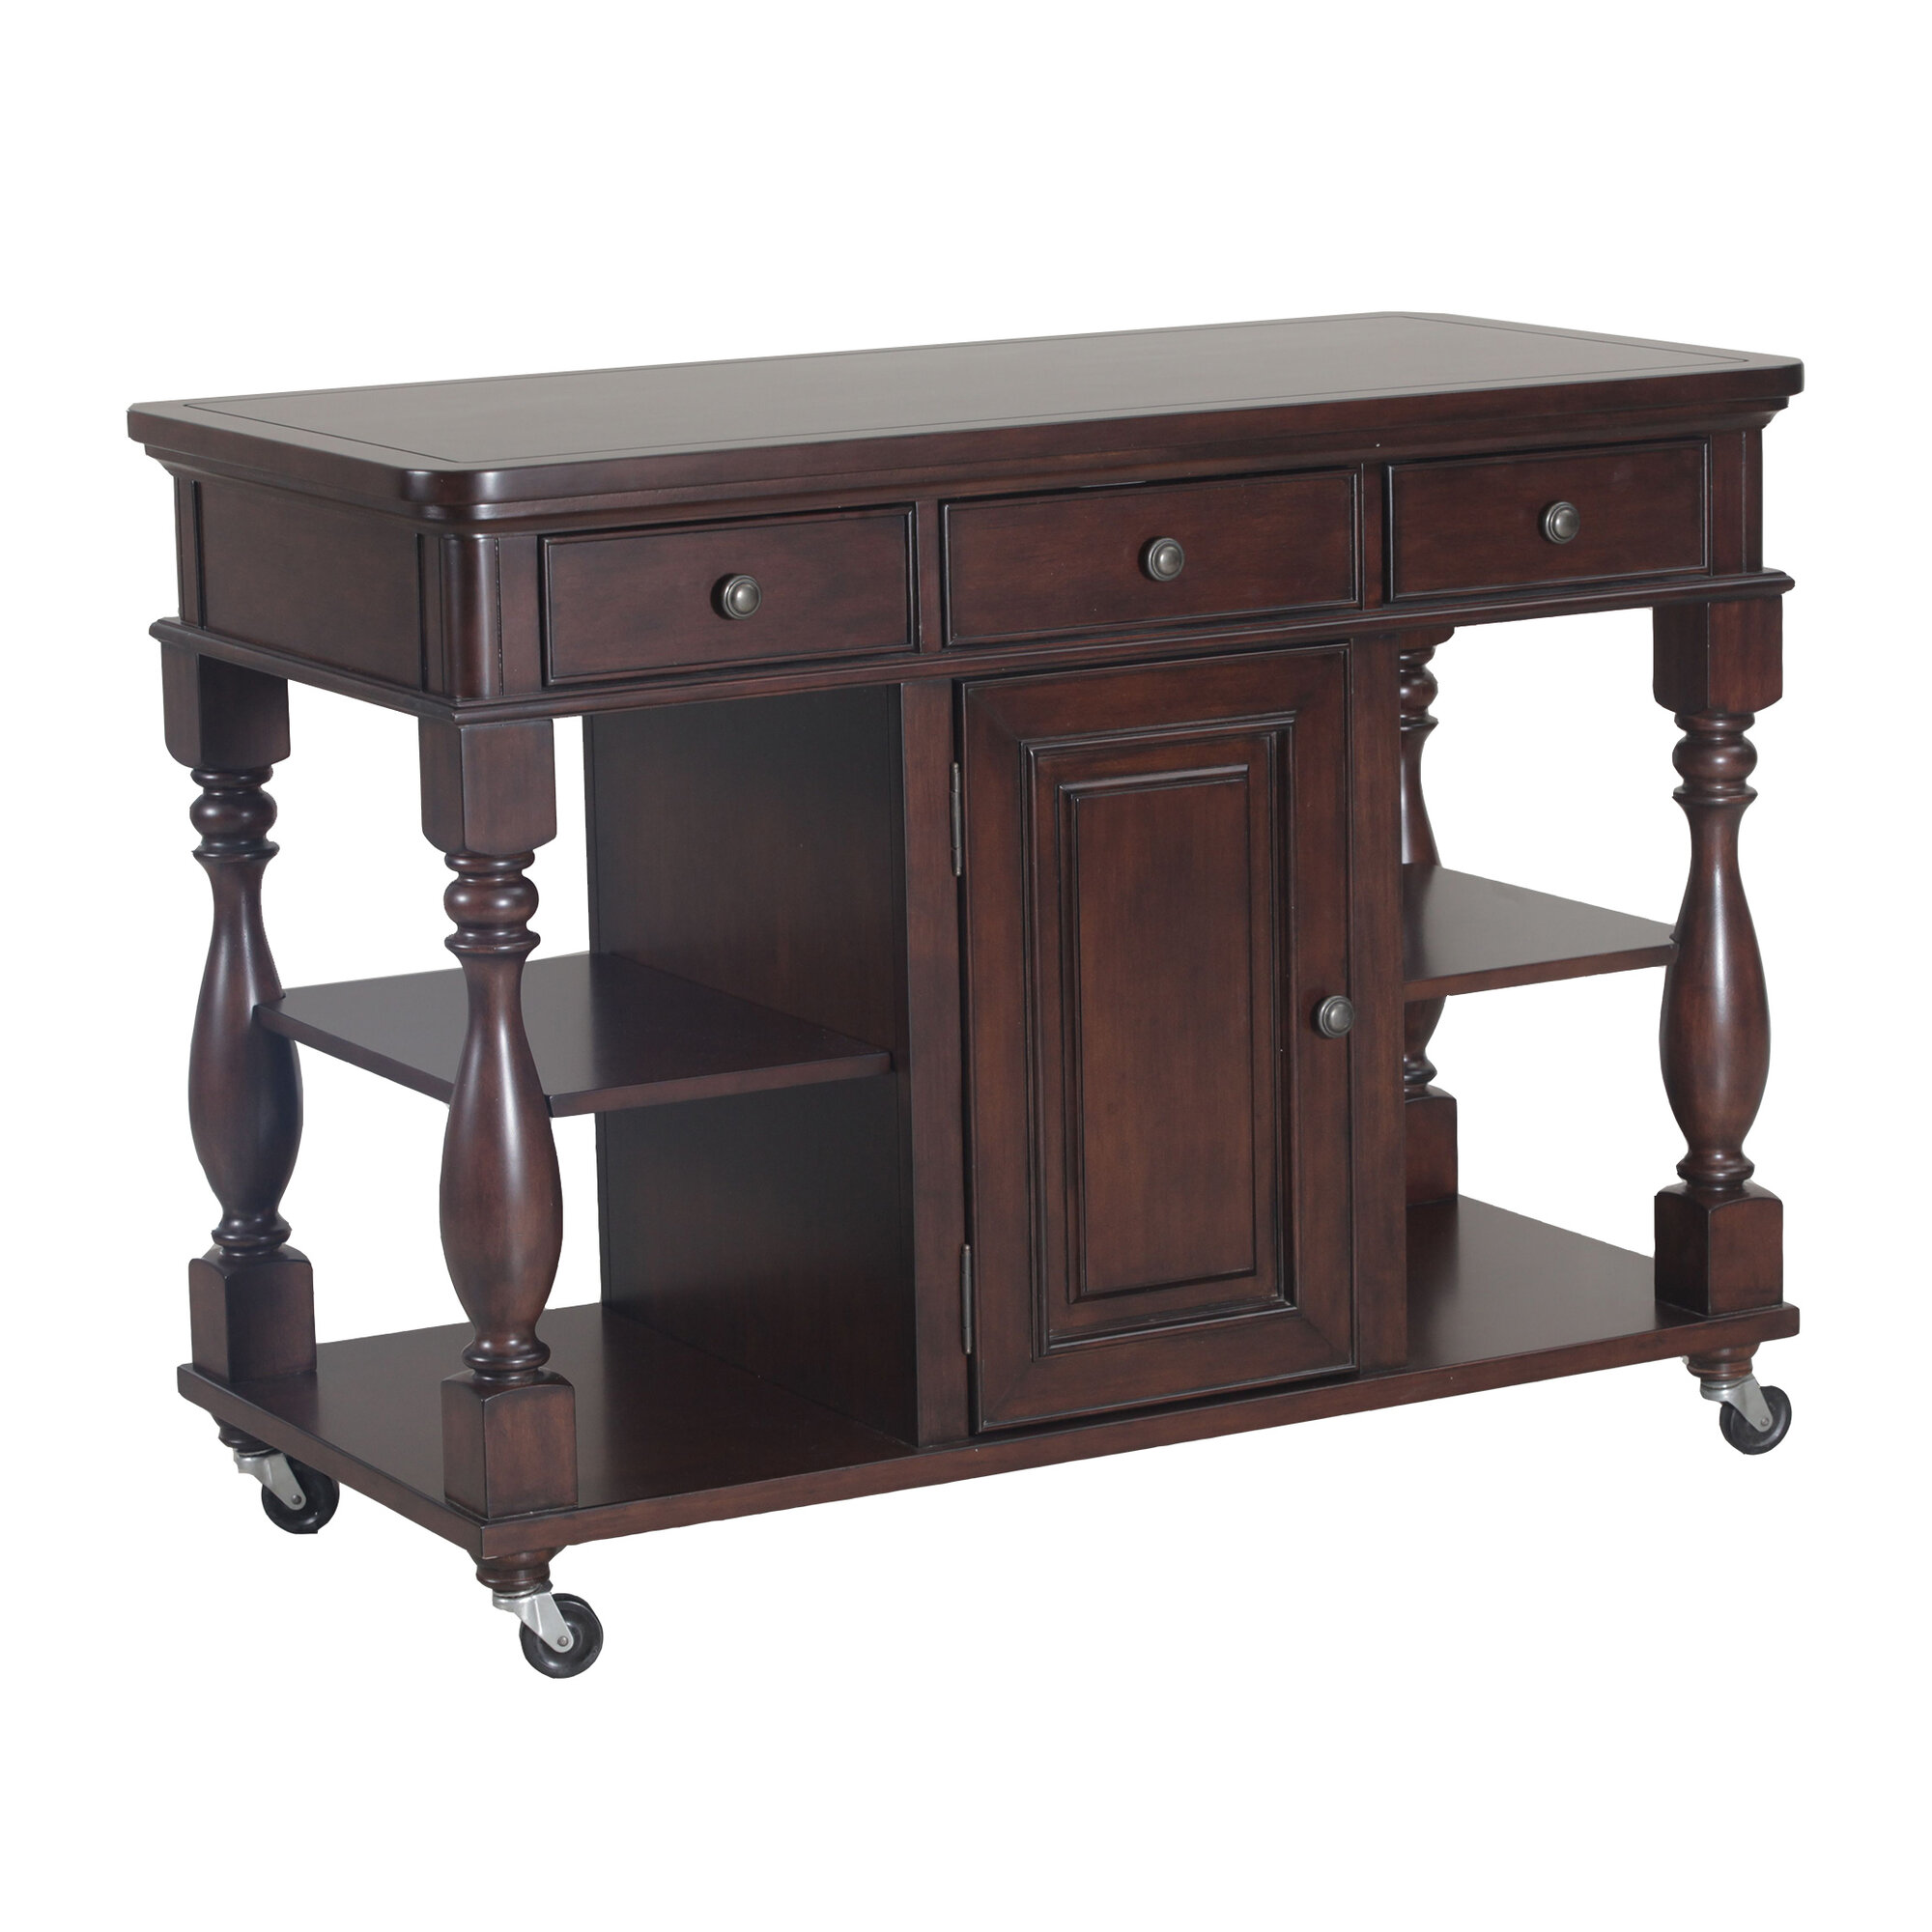 Kitchen Island Furniture Product: Powell Furniture Bourdain Kitchen Island